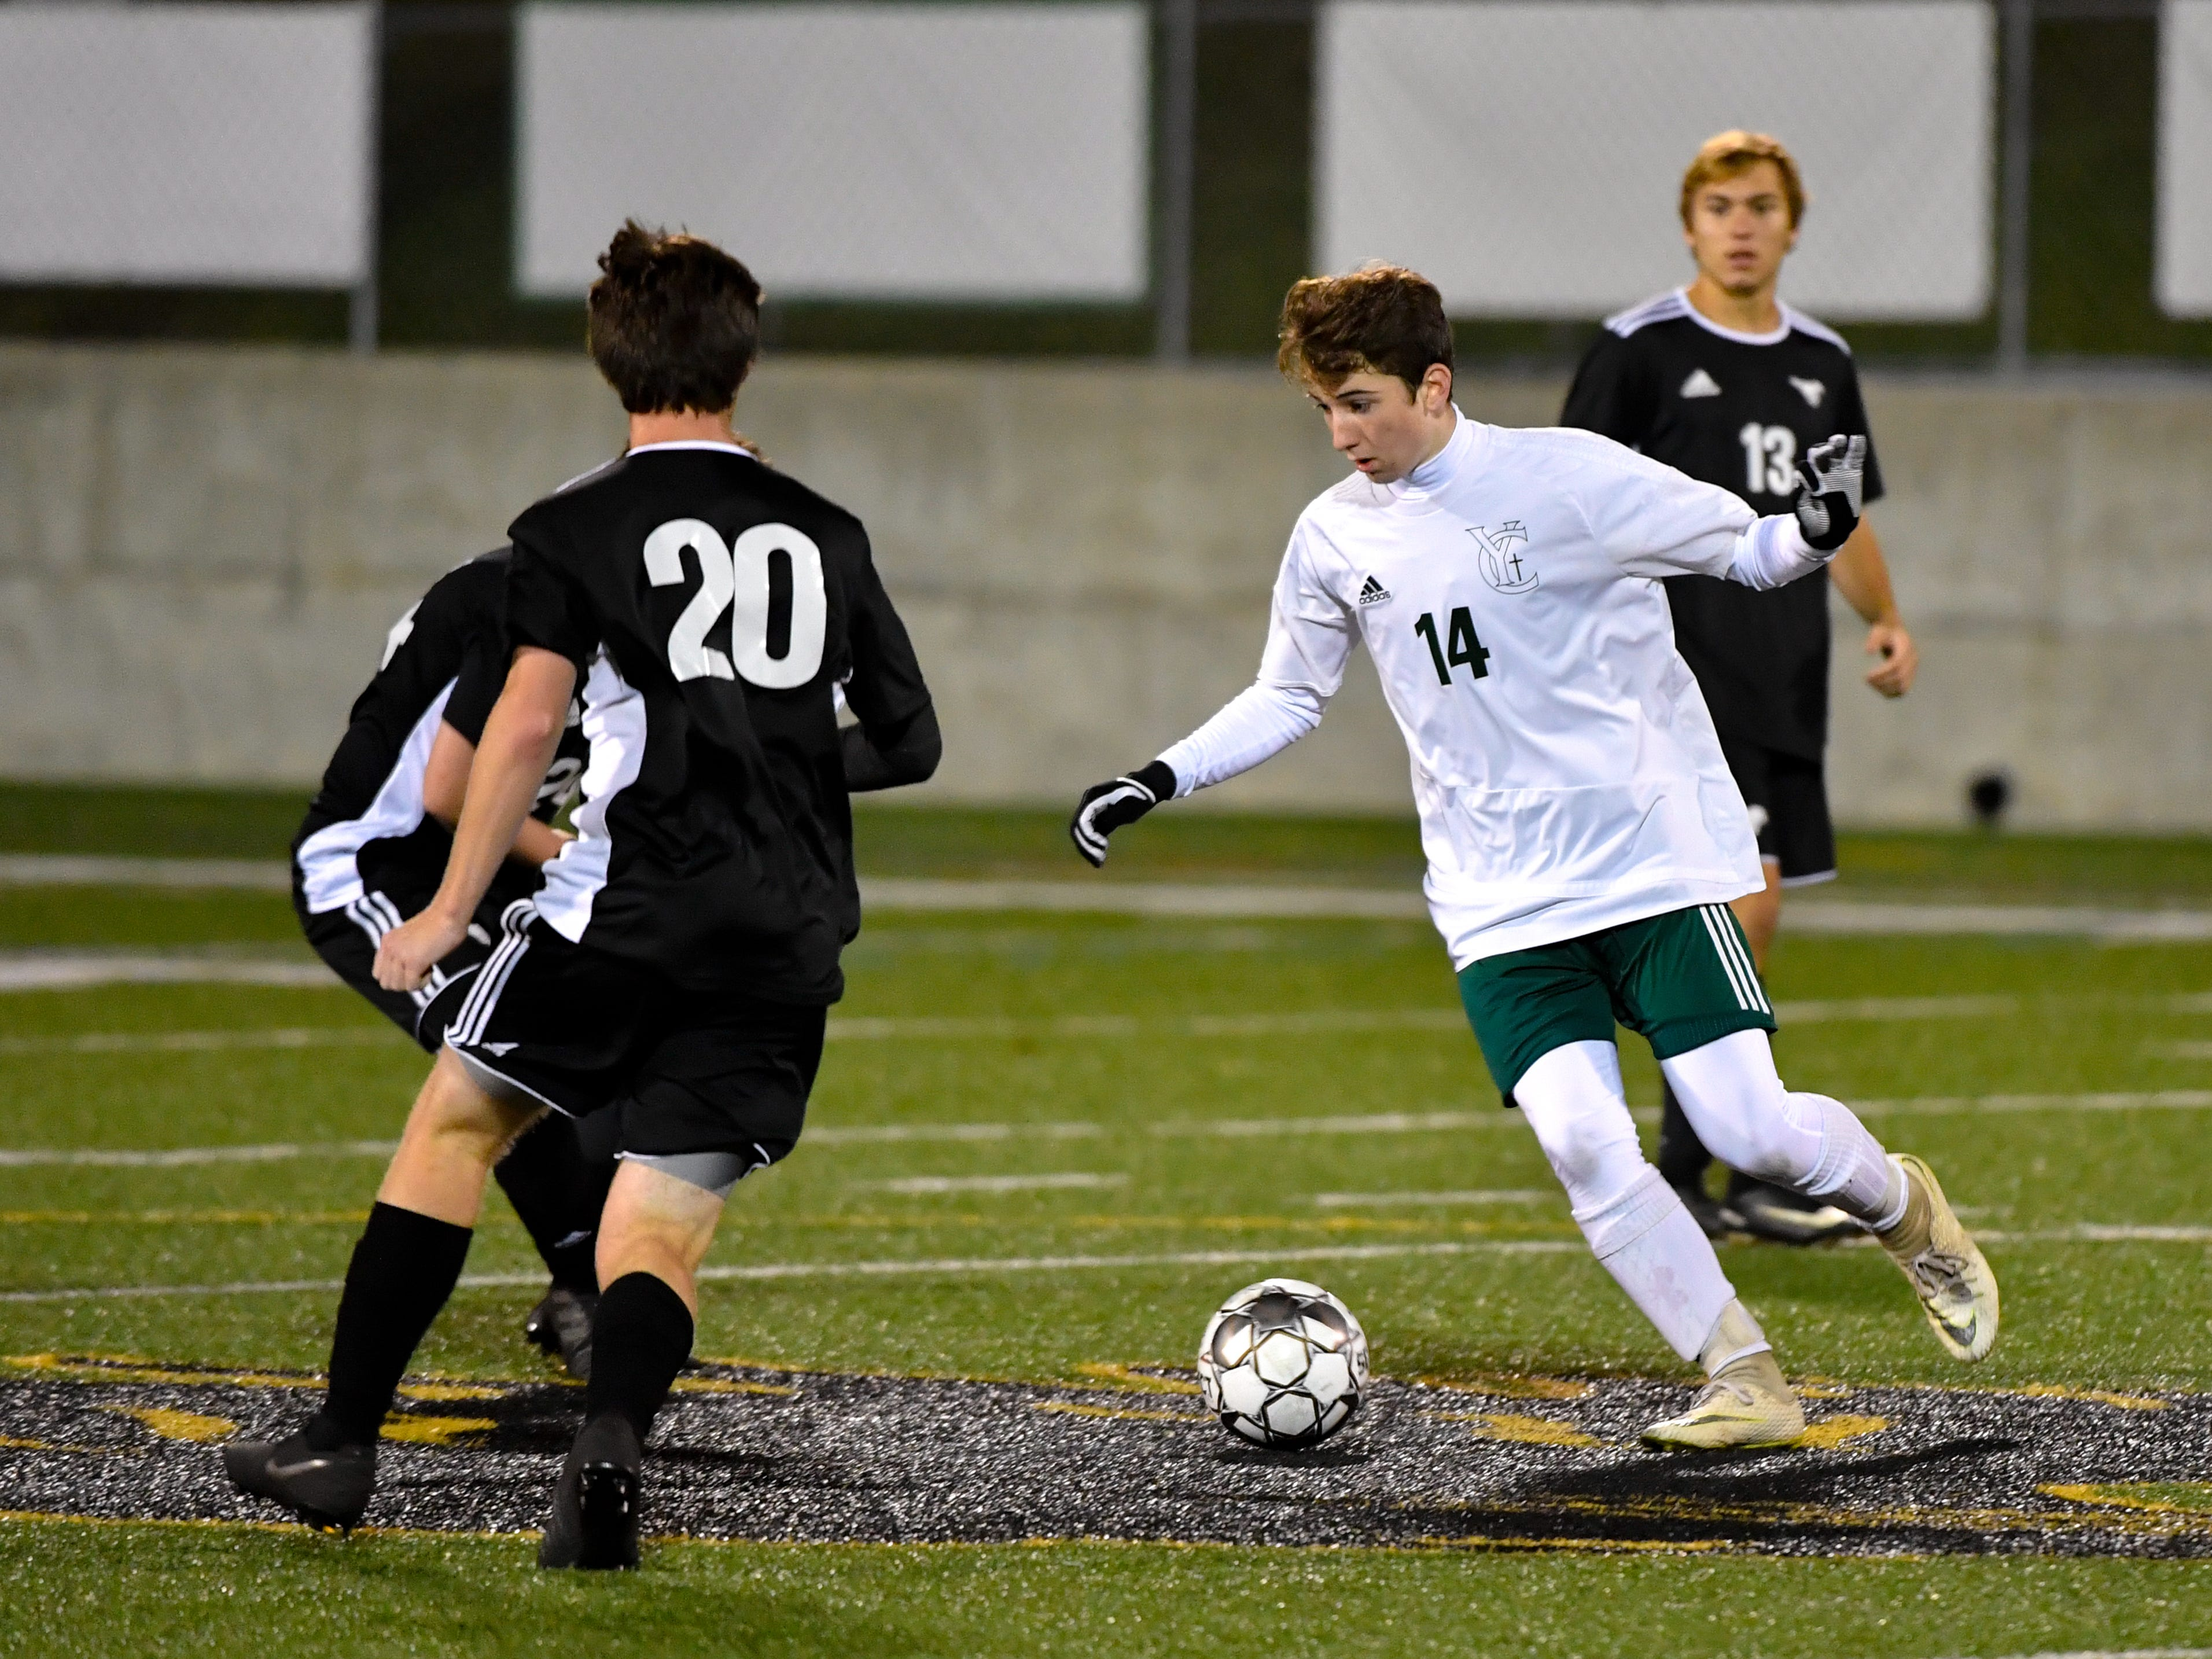 Dylan Staub (14) of York Catholic looks to split the defense during the boys soccer game between South Western and York Catholic, October 16, 2018. The Mustangs beat the Irish 2-1.